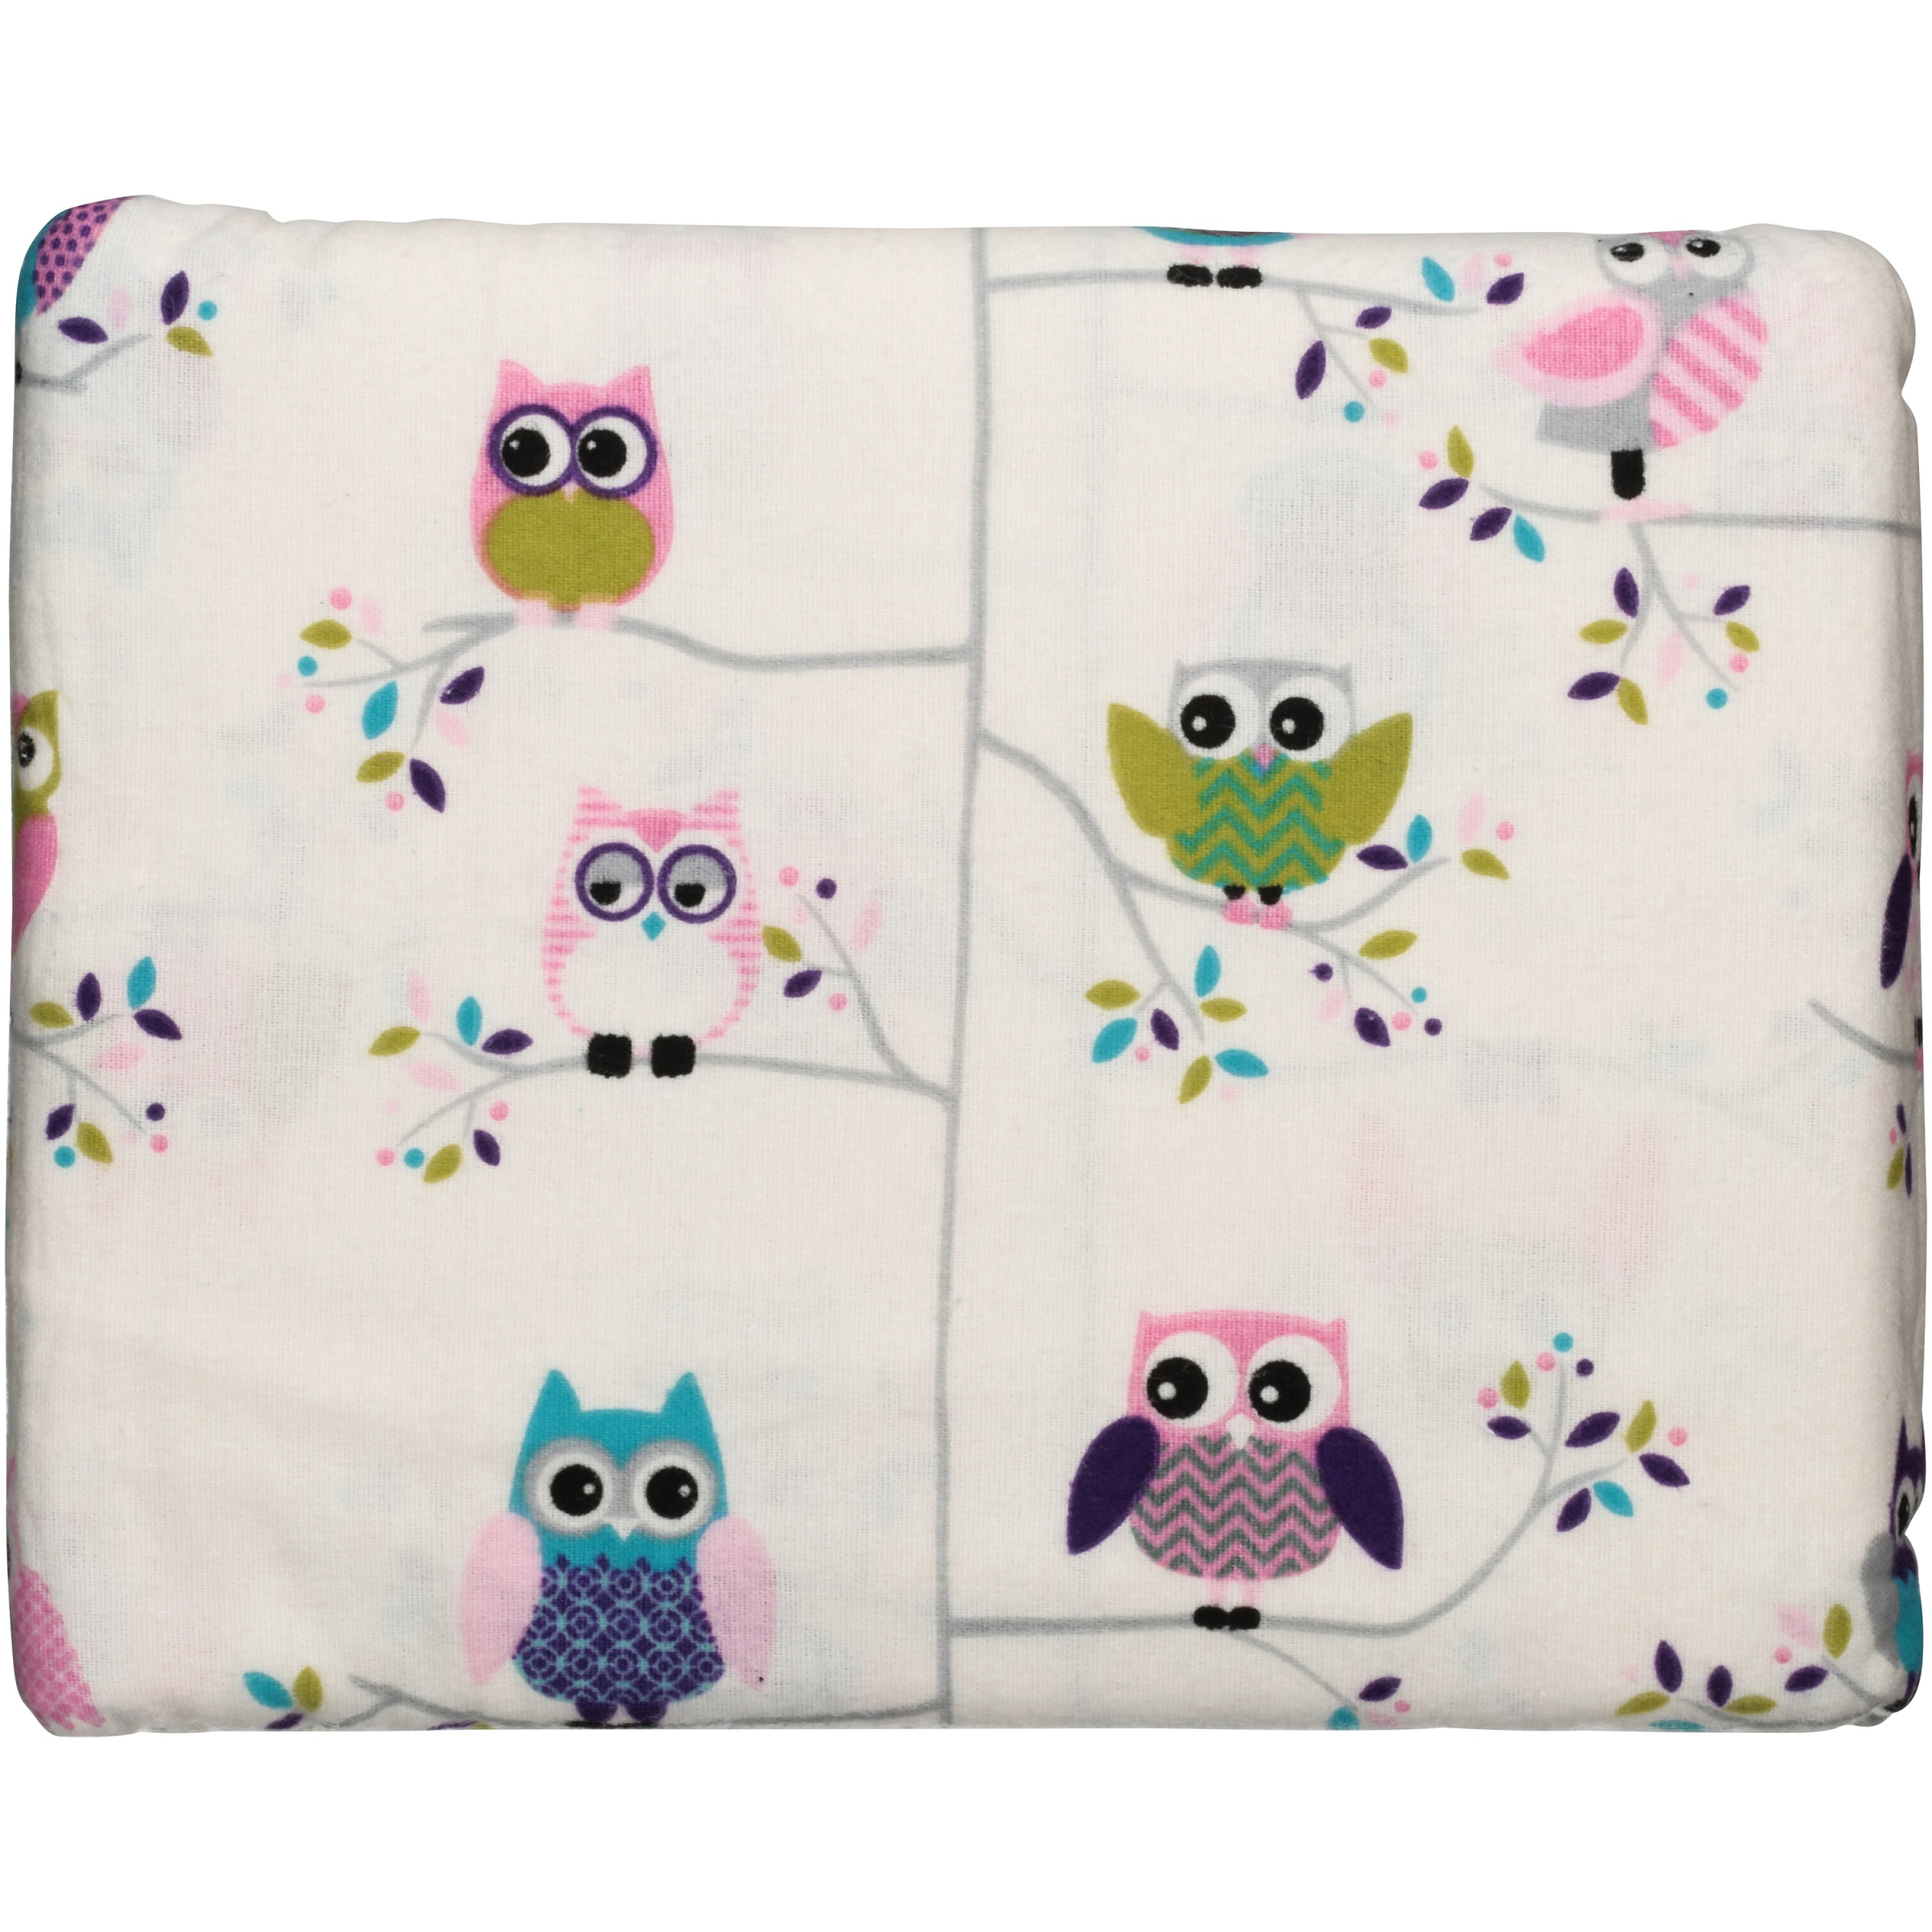 Mainstays Flannel Sheet Set, Owl Print